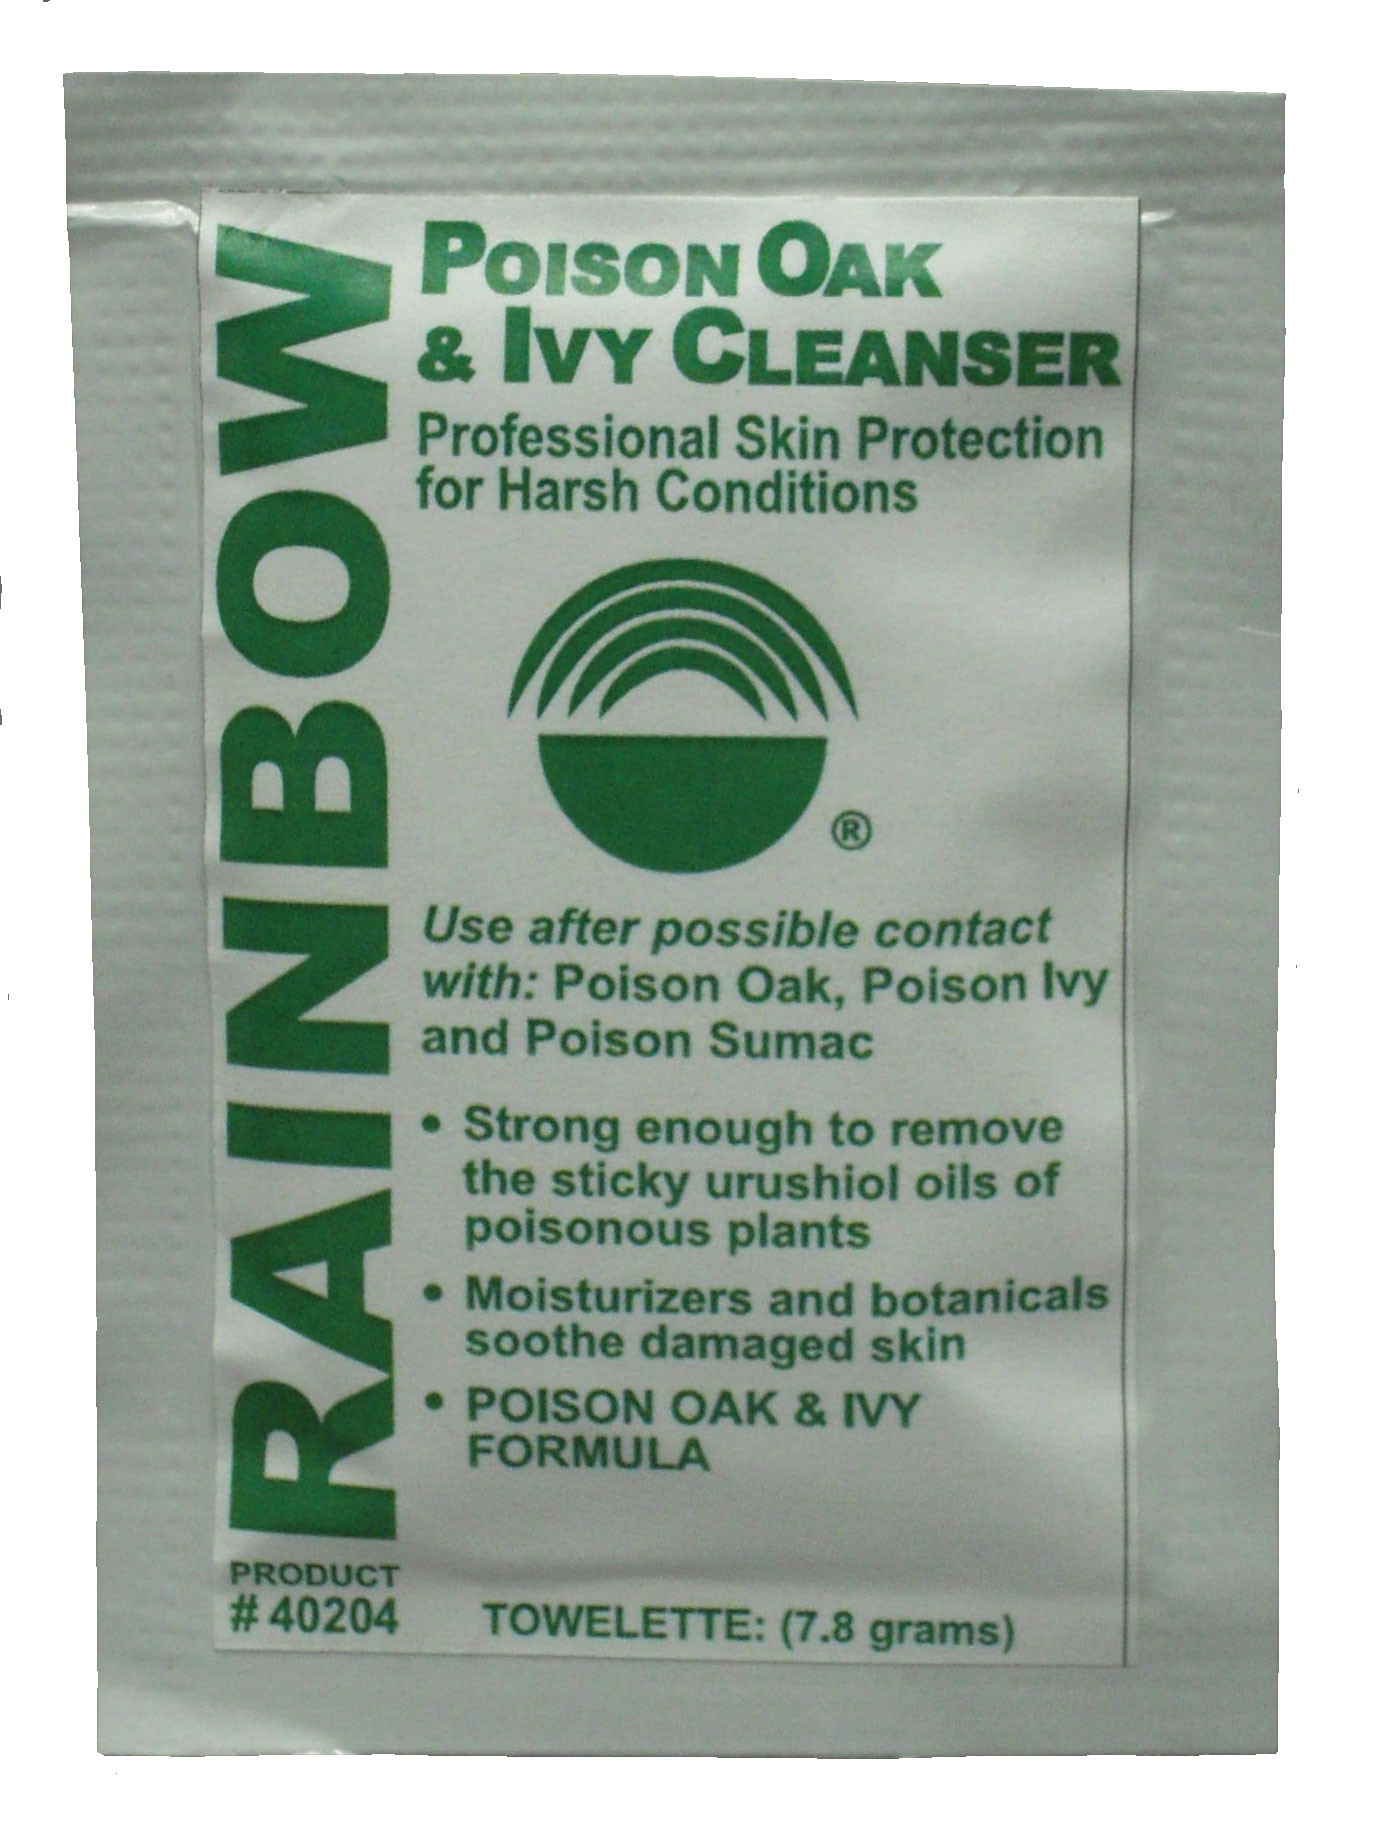 Rainbow Poison Oak & Ivy Cleanser Box of 12 packages